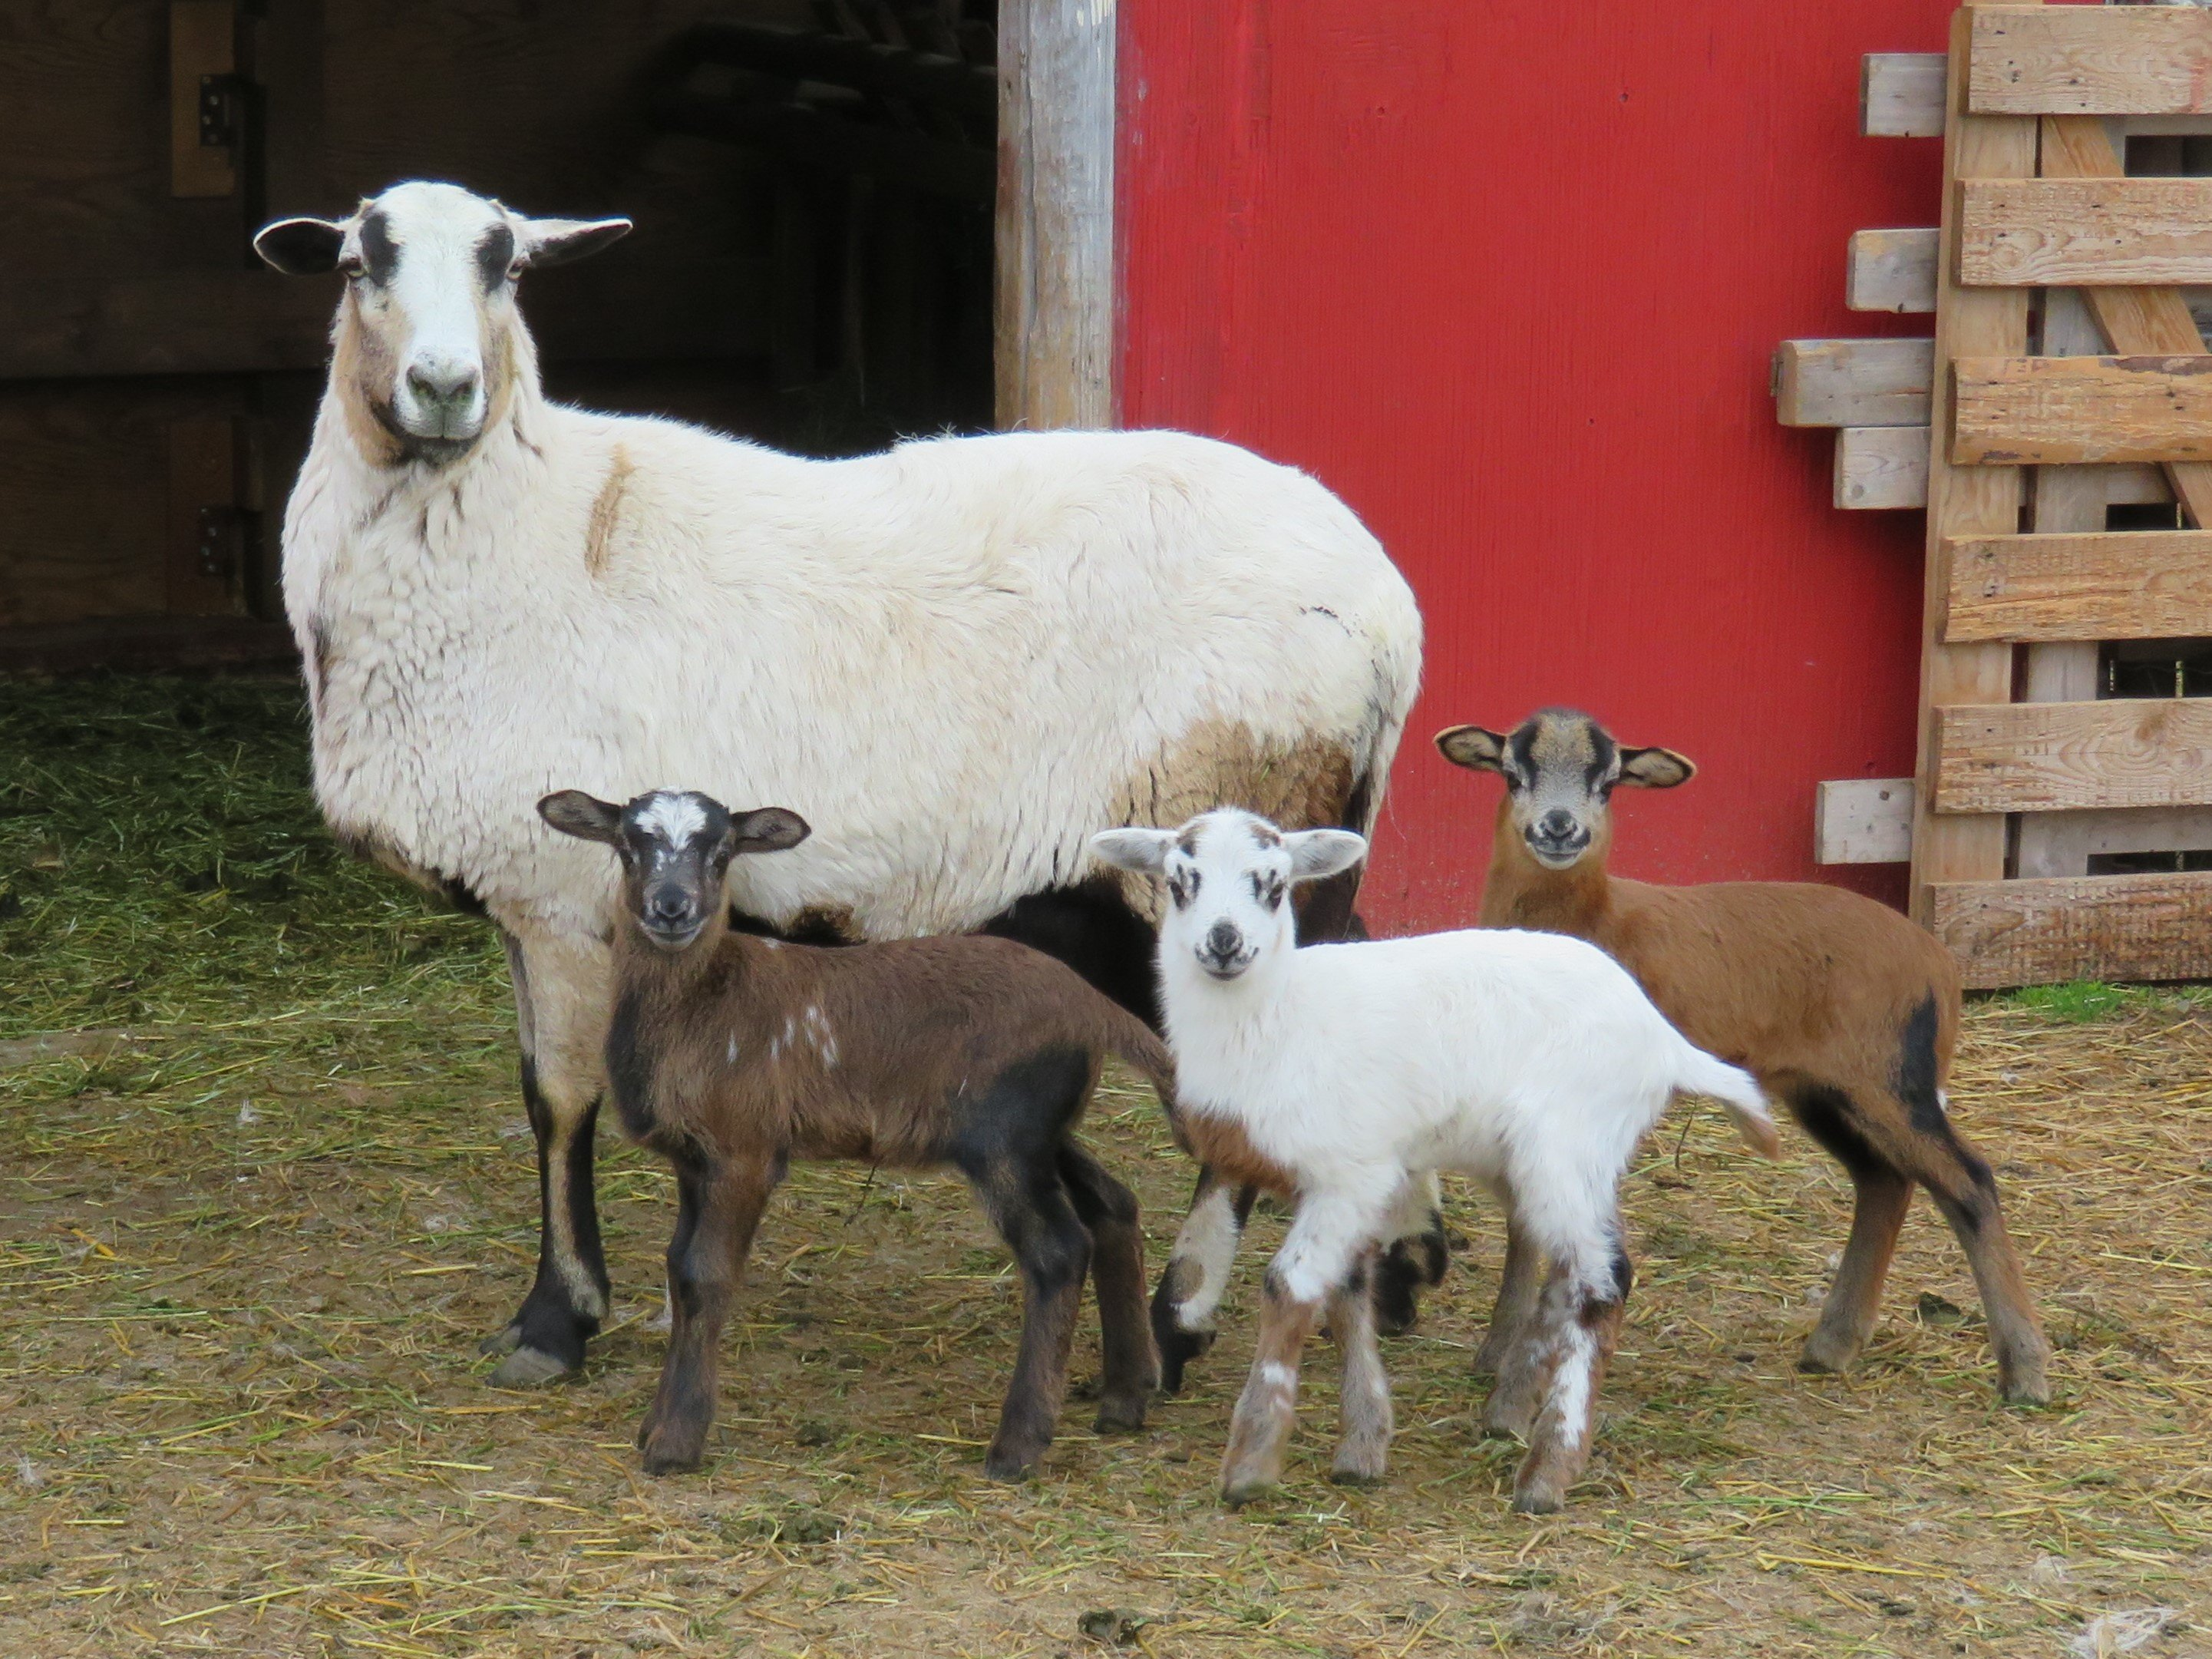 Big Rock Beauty ram ($300), ewe(staying) & ewe($200 sale pending)